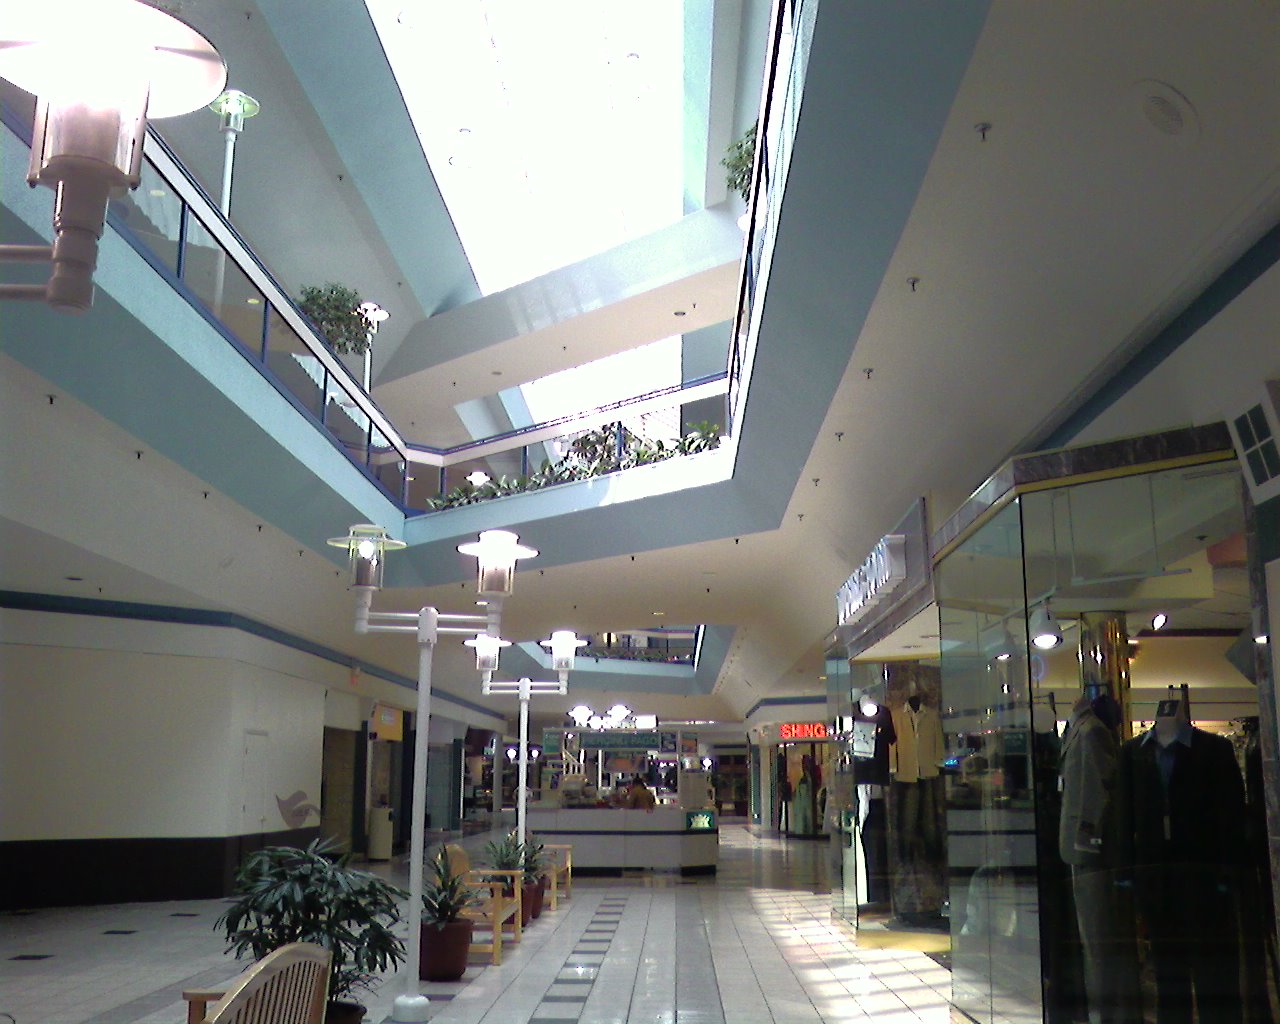 Laurel Mall; Laurel, Maryland : Labelscar